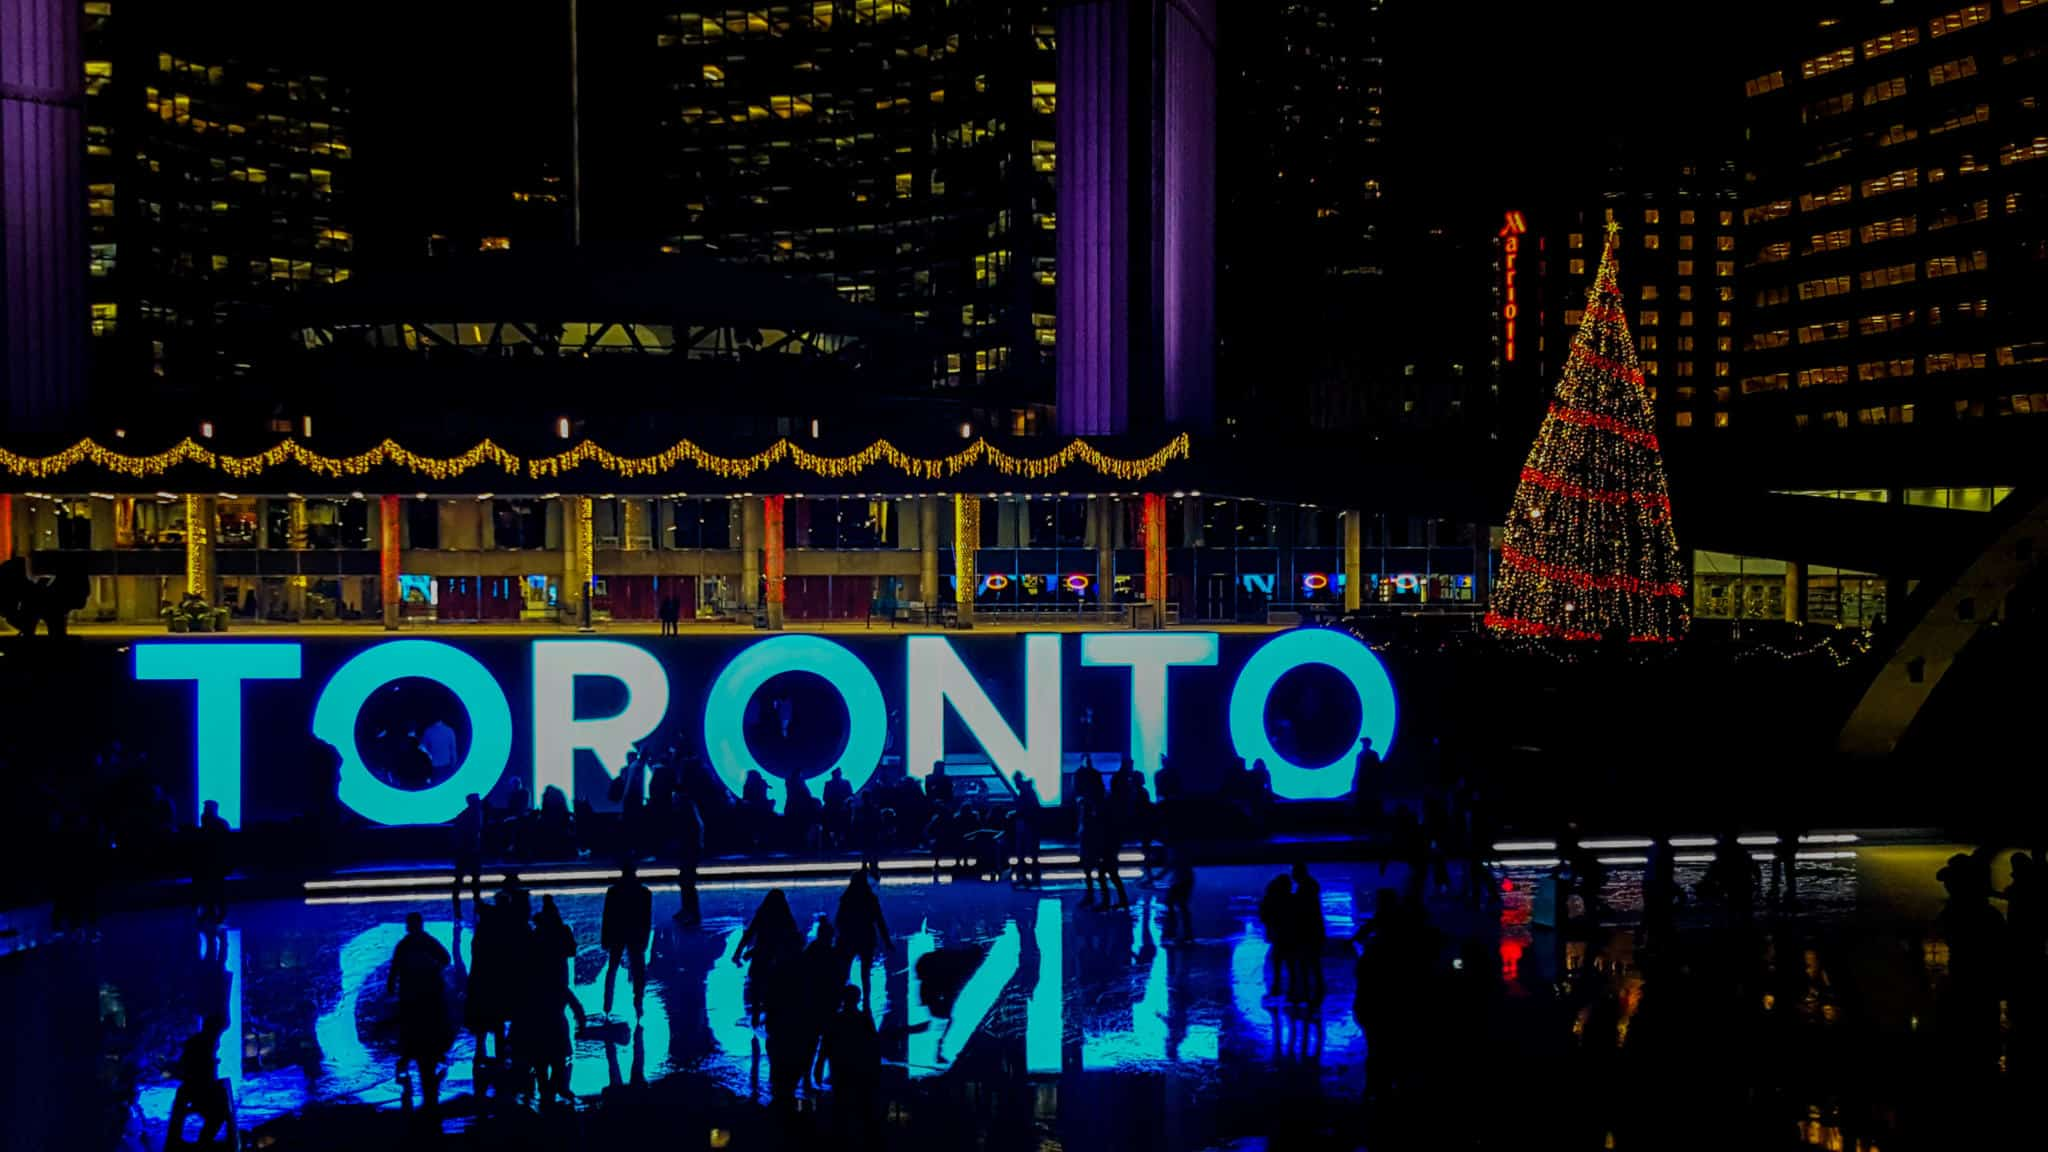 Taking a picture at the Toronto Sign is one of the free things to do in Toronto